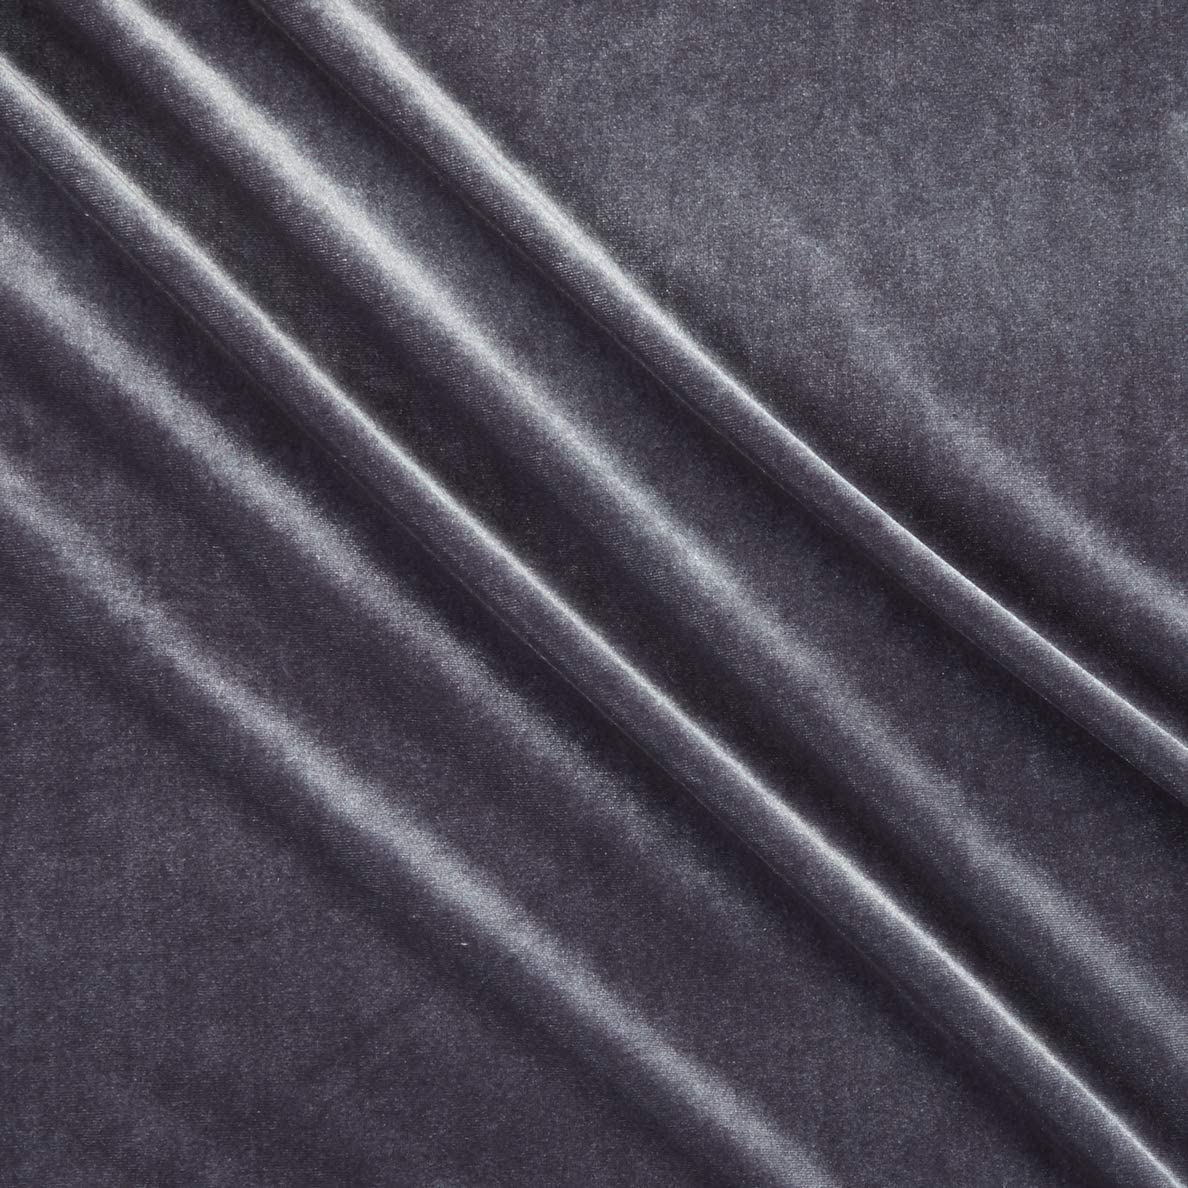 Colored Stretch Velvet Spandex 7 colors by yard or half yard